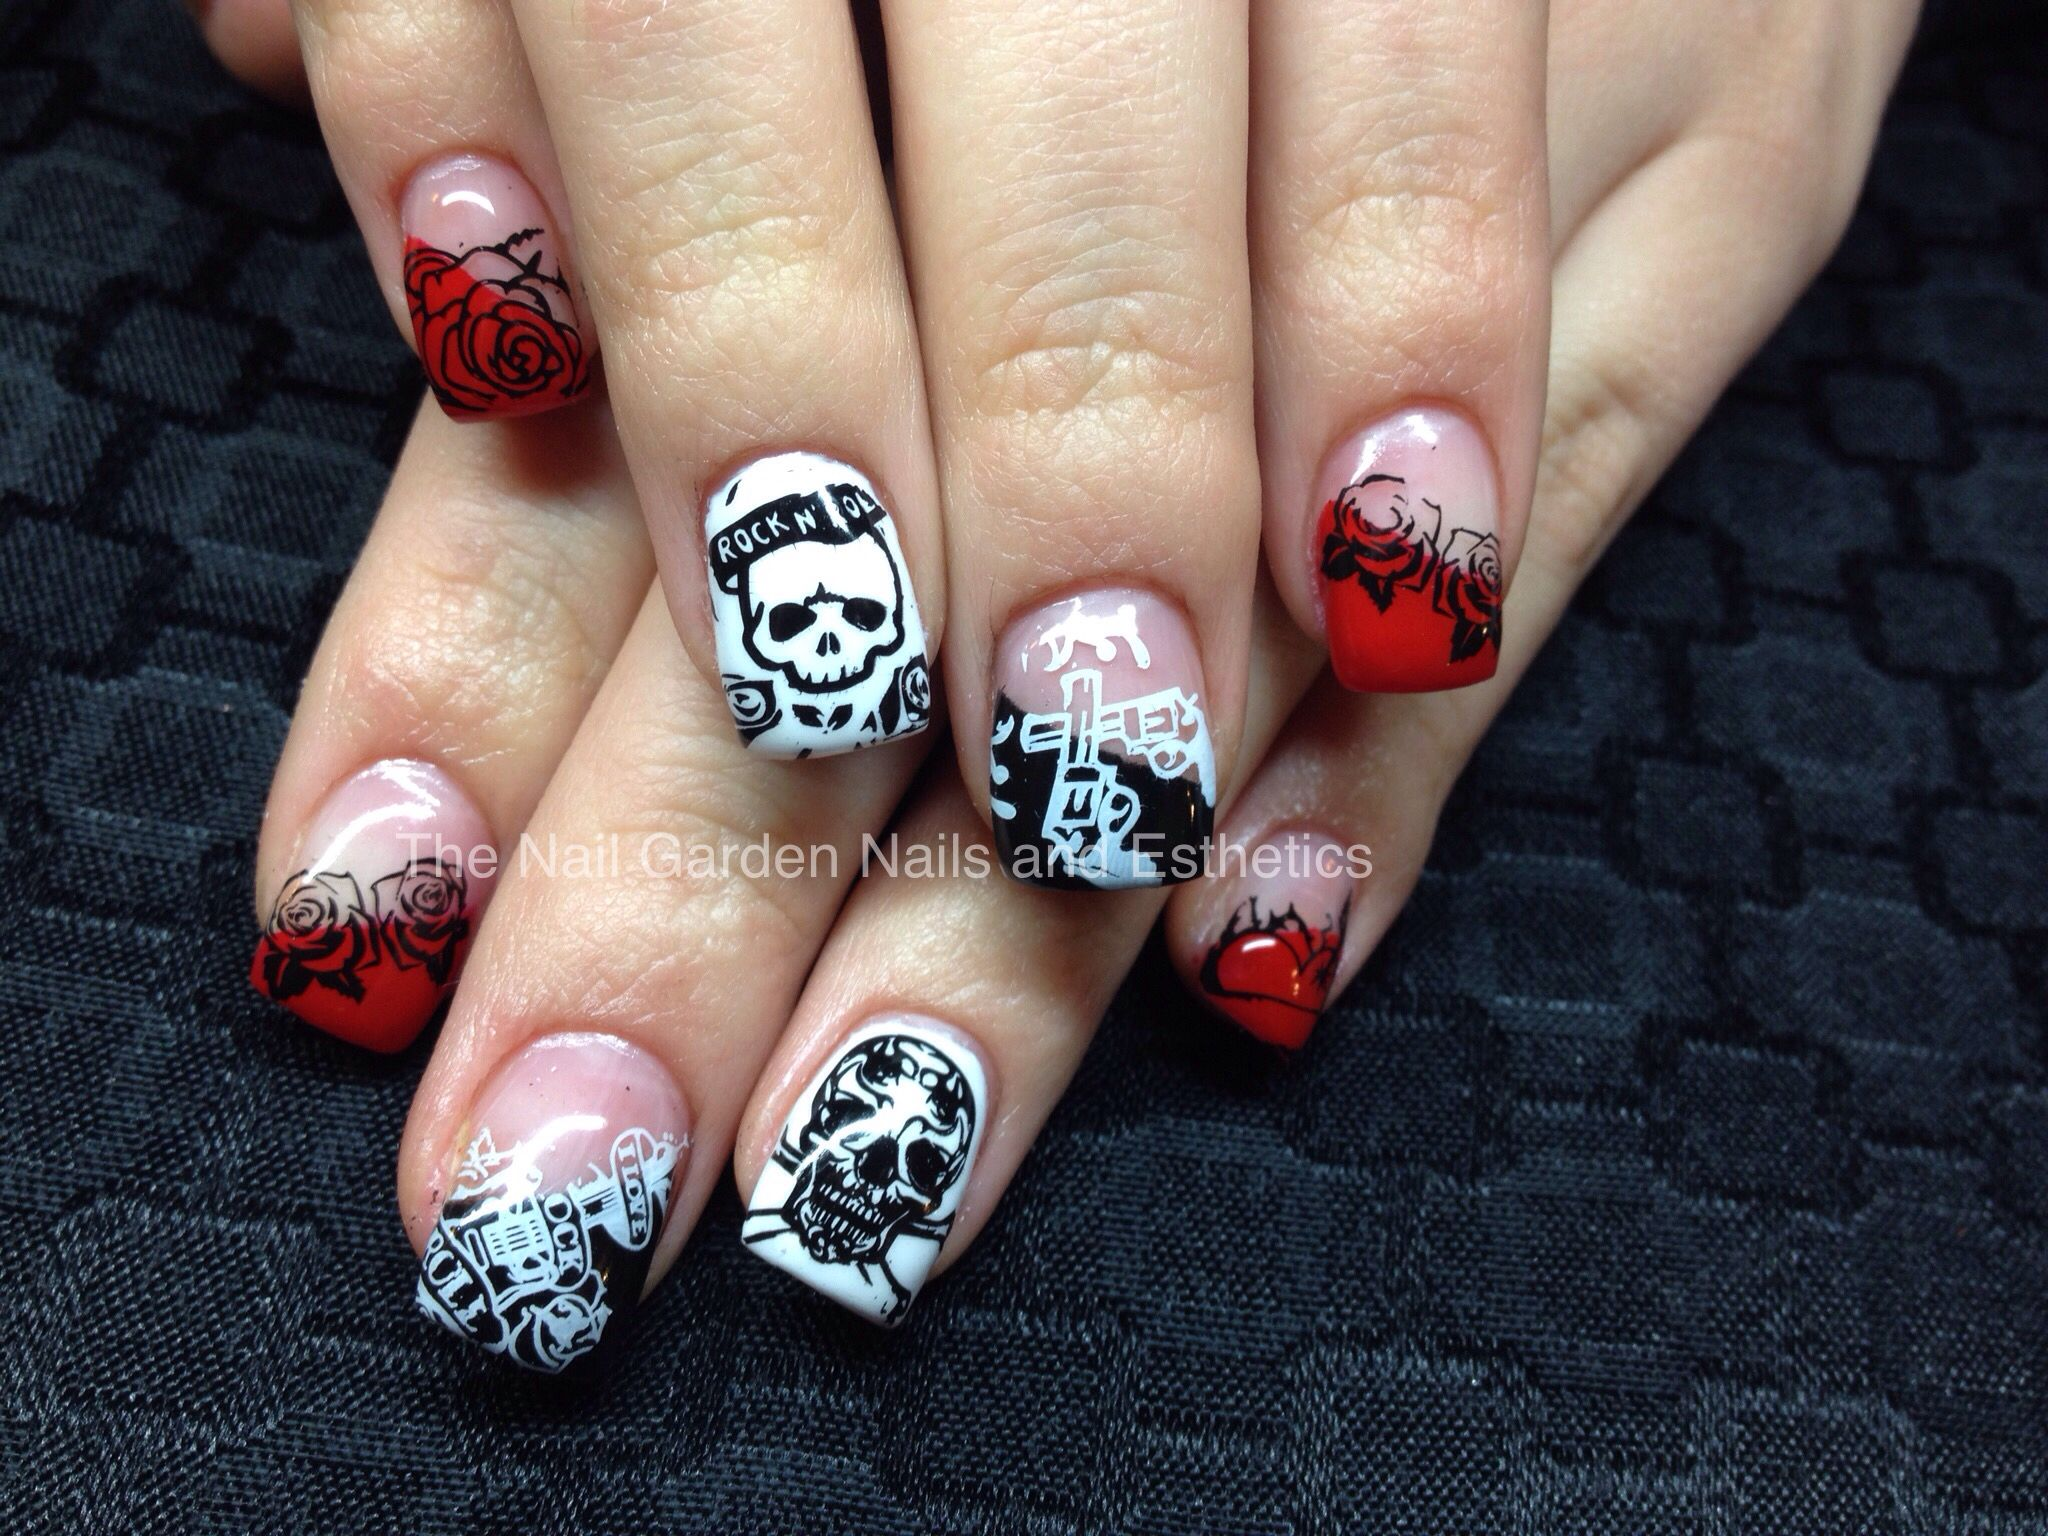 Ed Hardy inspired nails | ネイル | Pinterest